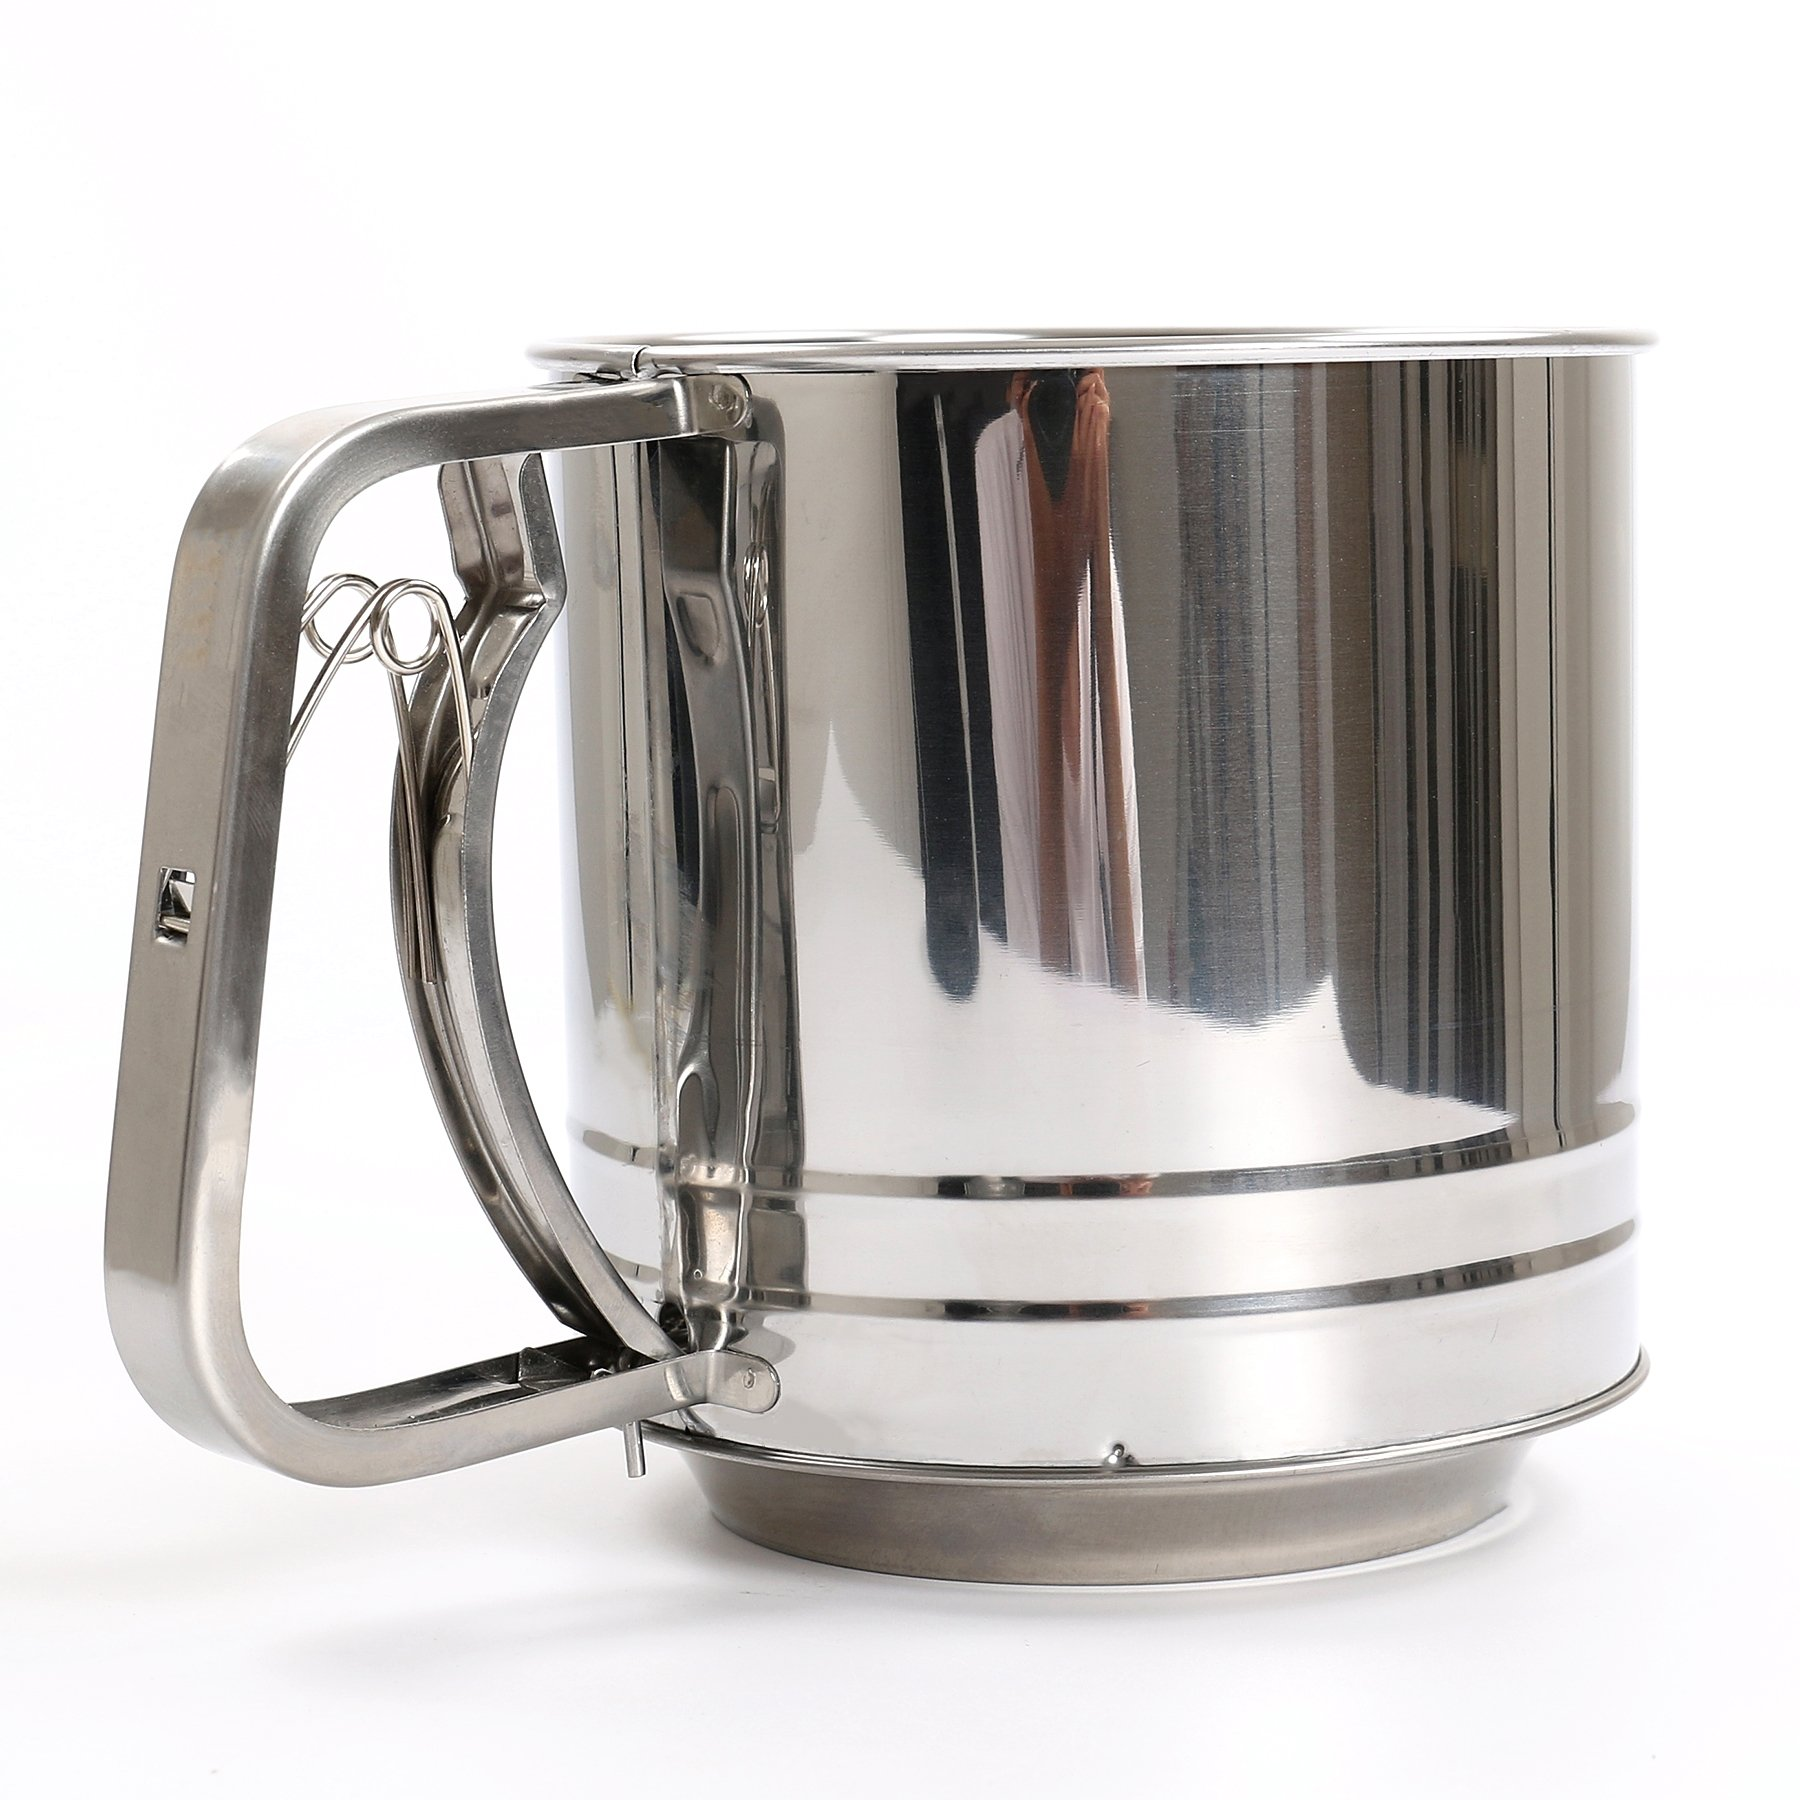 Flour Sifter, NPYPQ Stainless Steel Flour Sieve Sifters Mesh Cup - One Hand Crank - Very Fine - Large